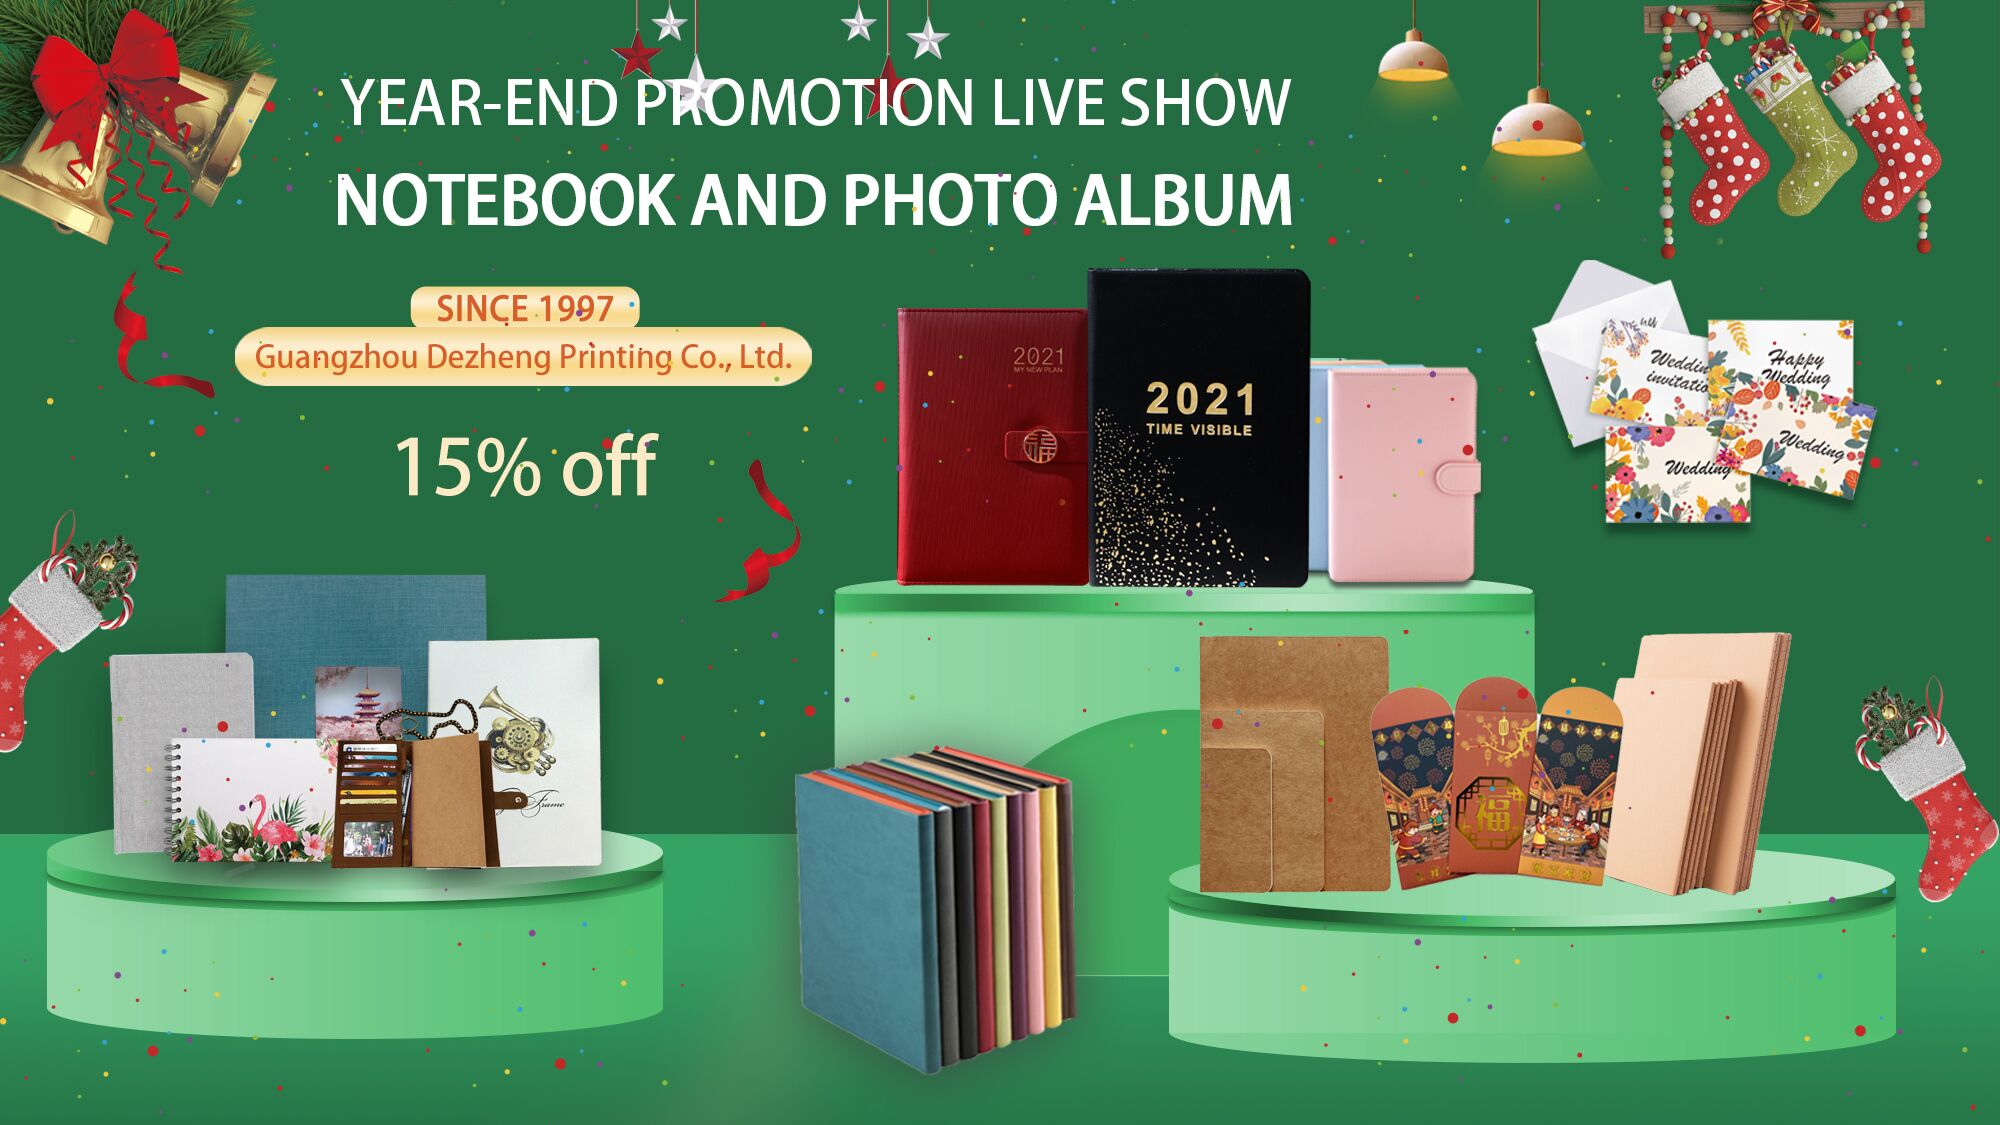 news-Year-end promotion live show for notebooks and photo album-Dezheng-img